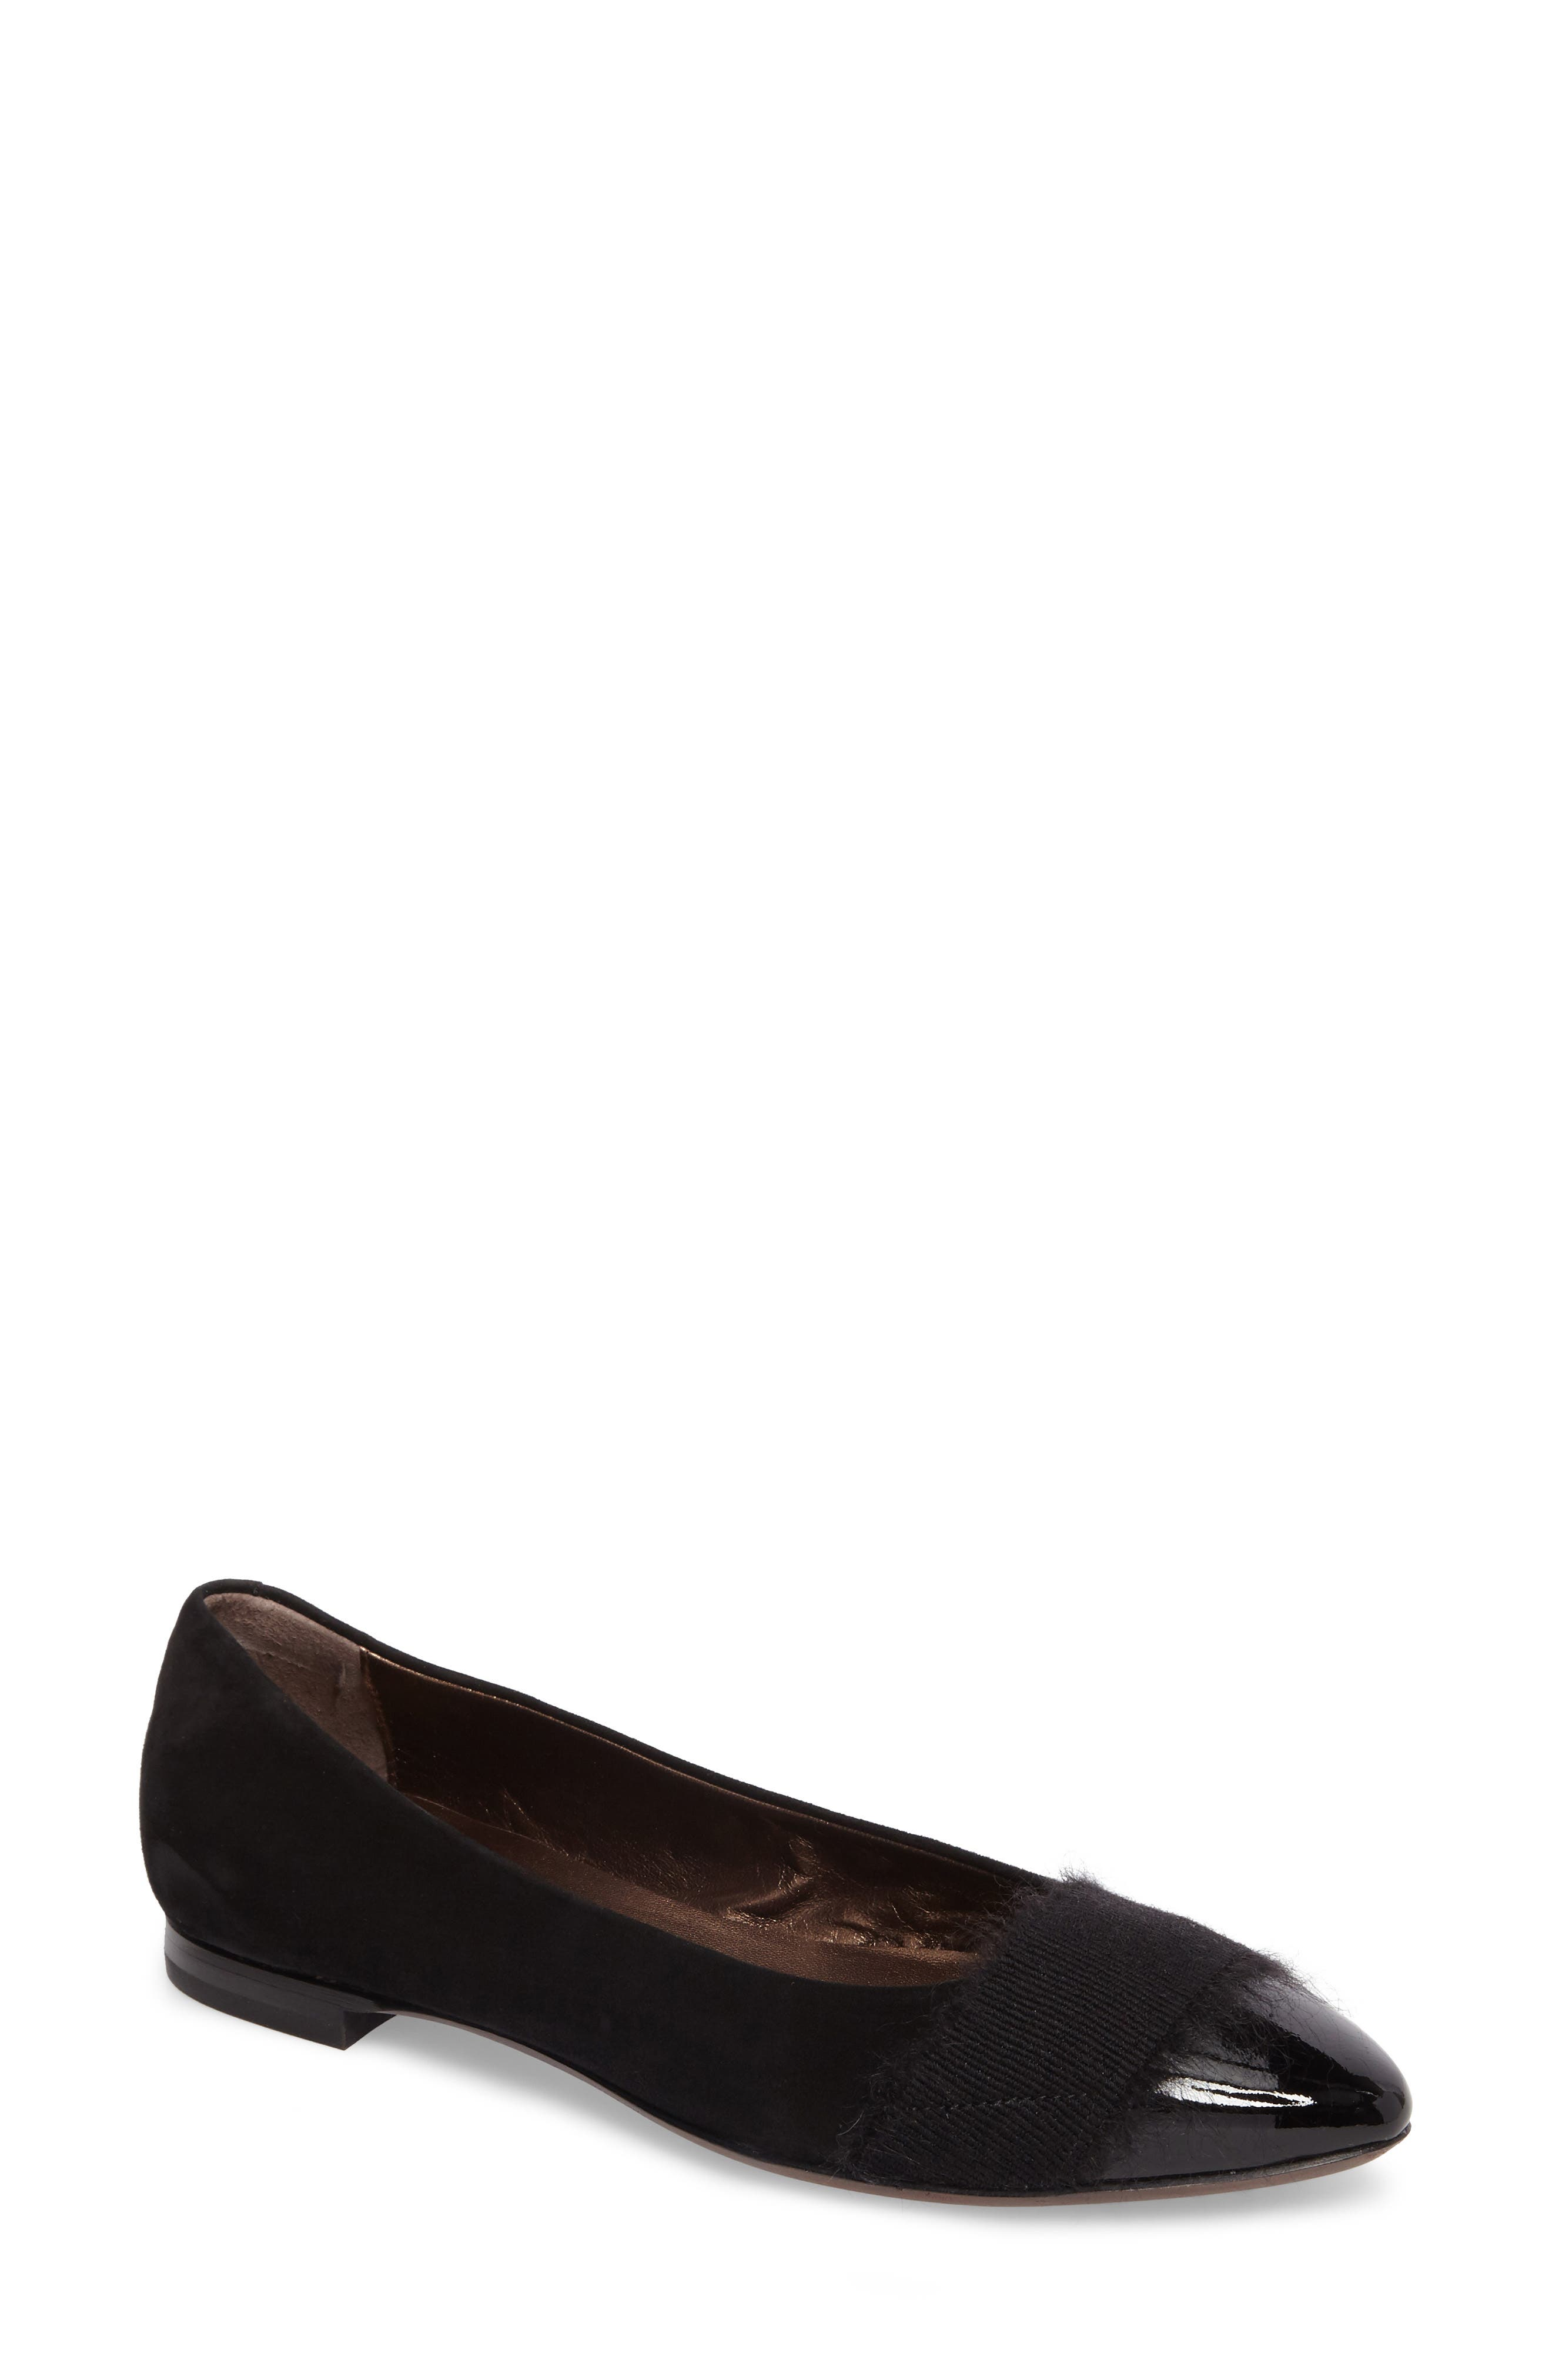 Belted Ballet Flat,                             Main thumbnail 1, color,